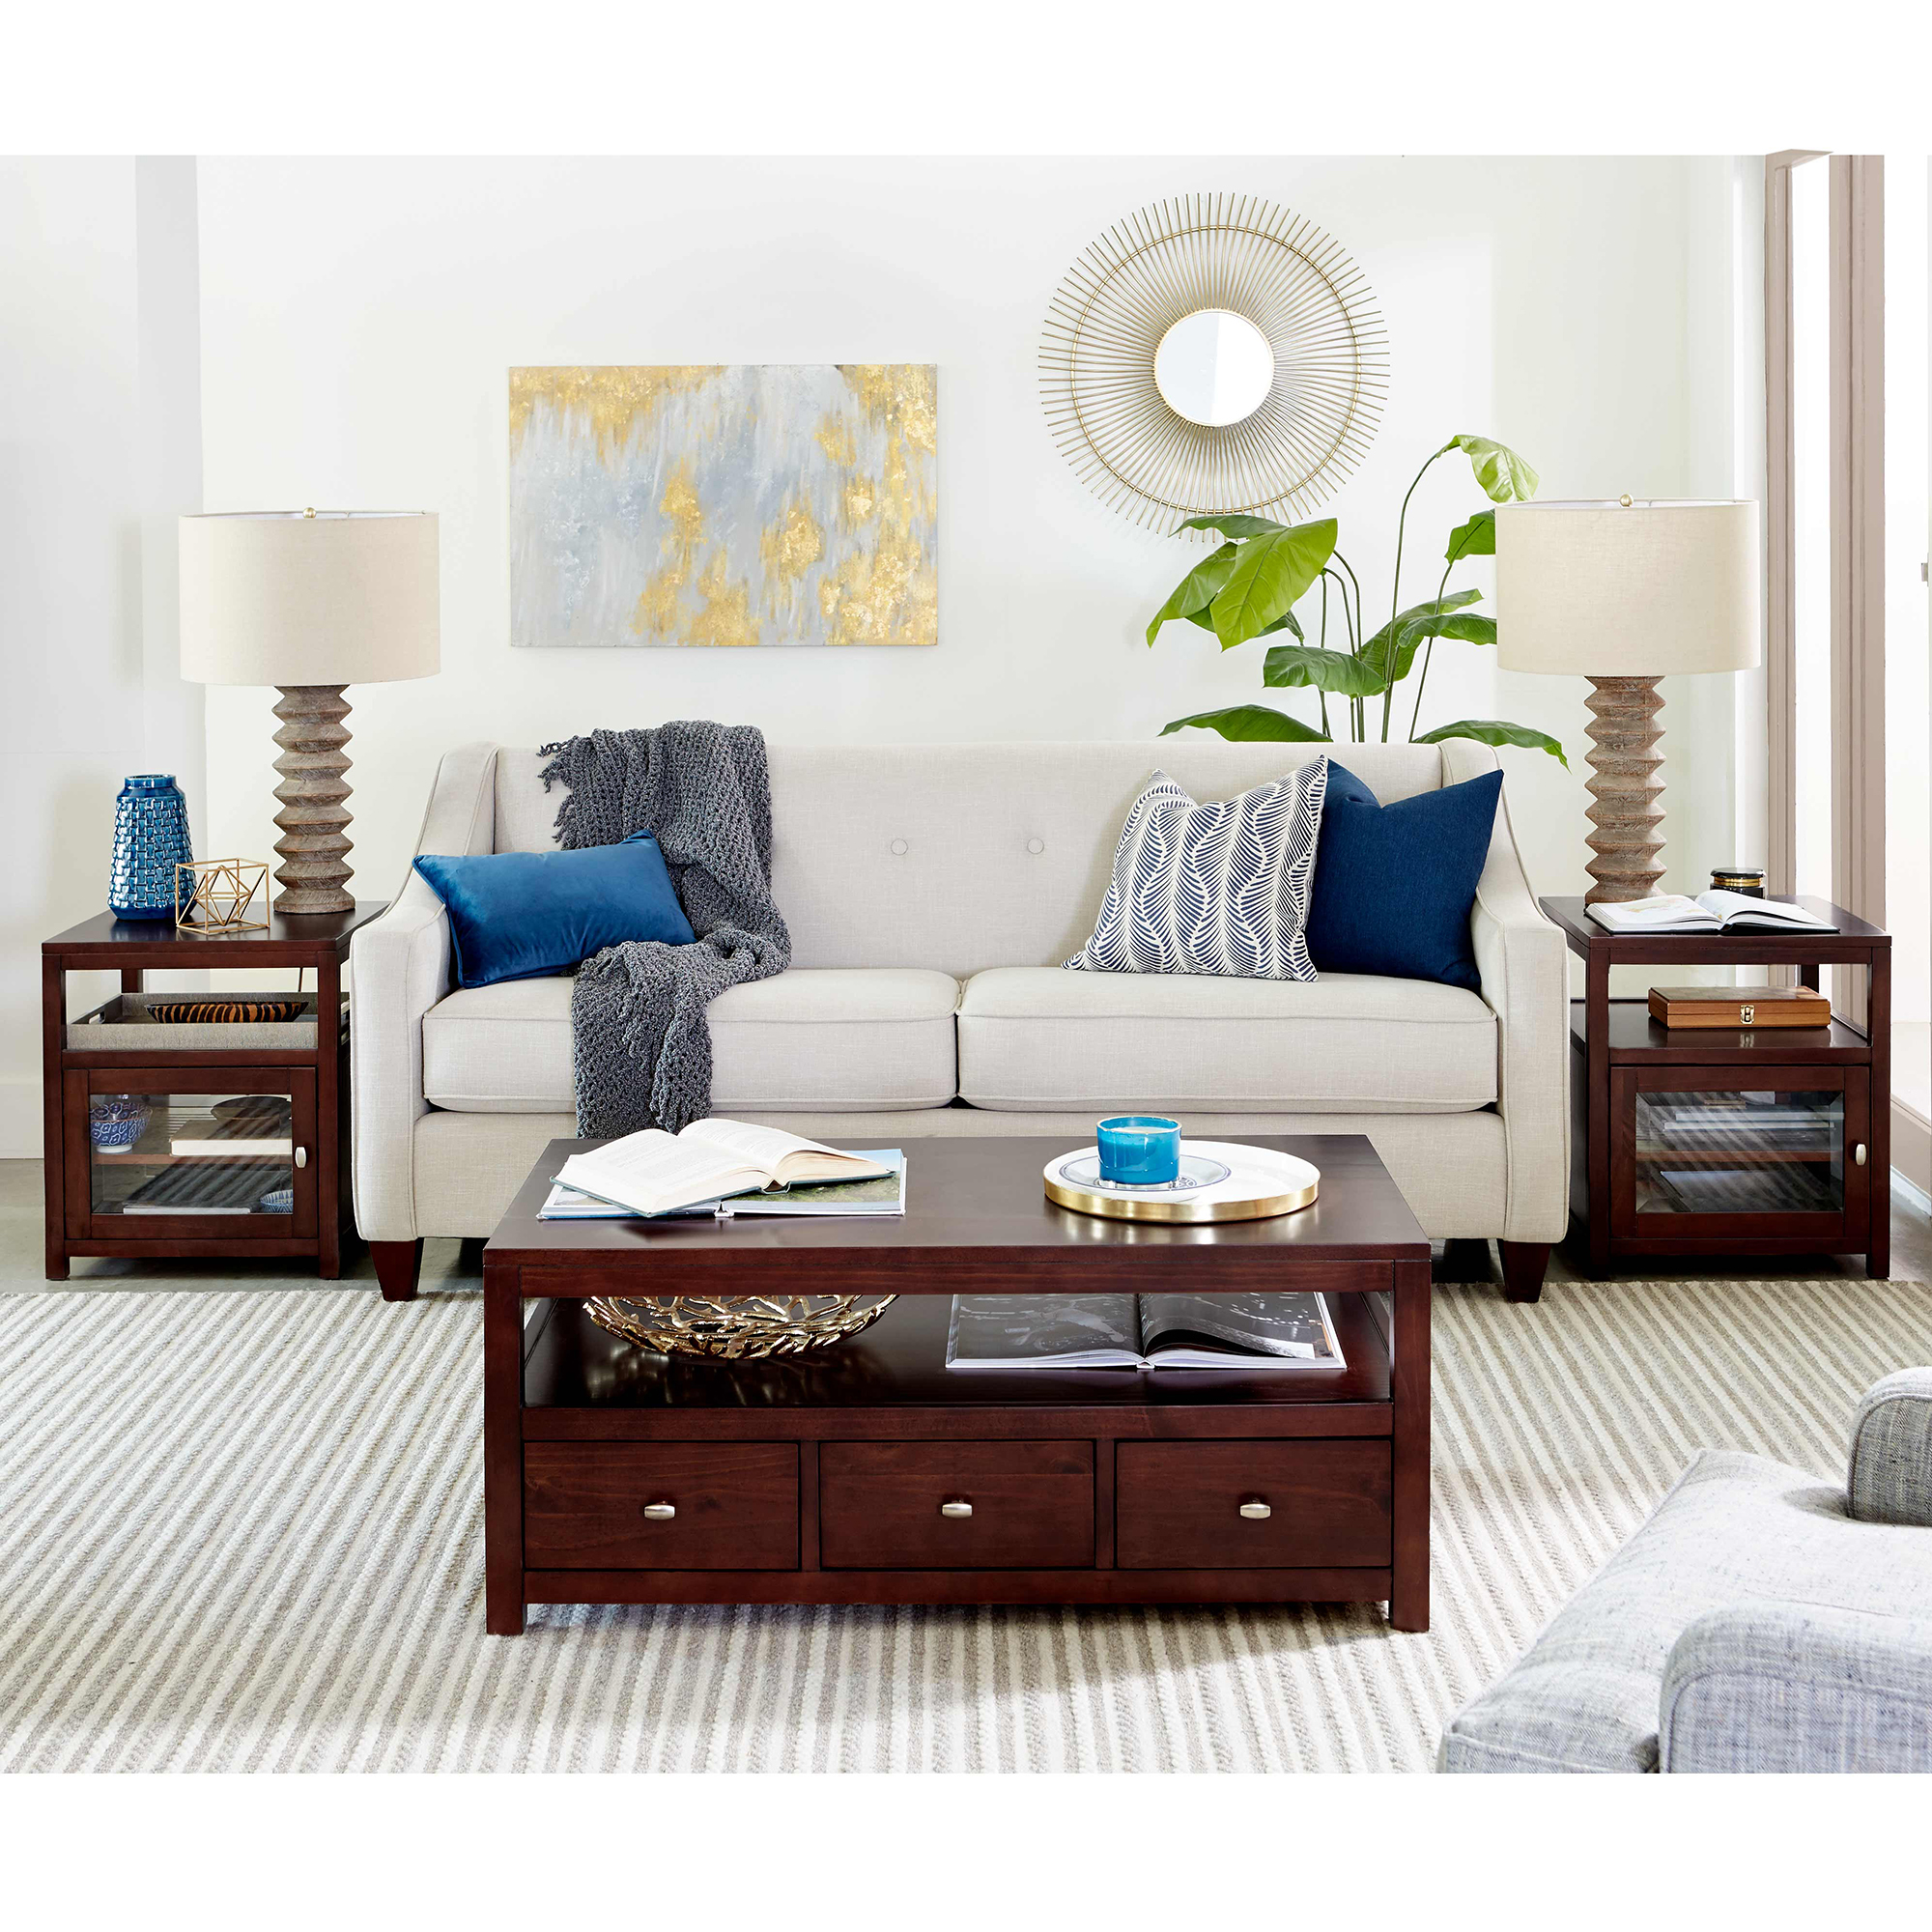 Fantastic 3 Piece Pacifica Occasional Set Andrewgaddart Wooden Chair Designs For Living Room Andrewgaddartcom